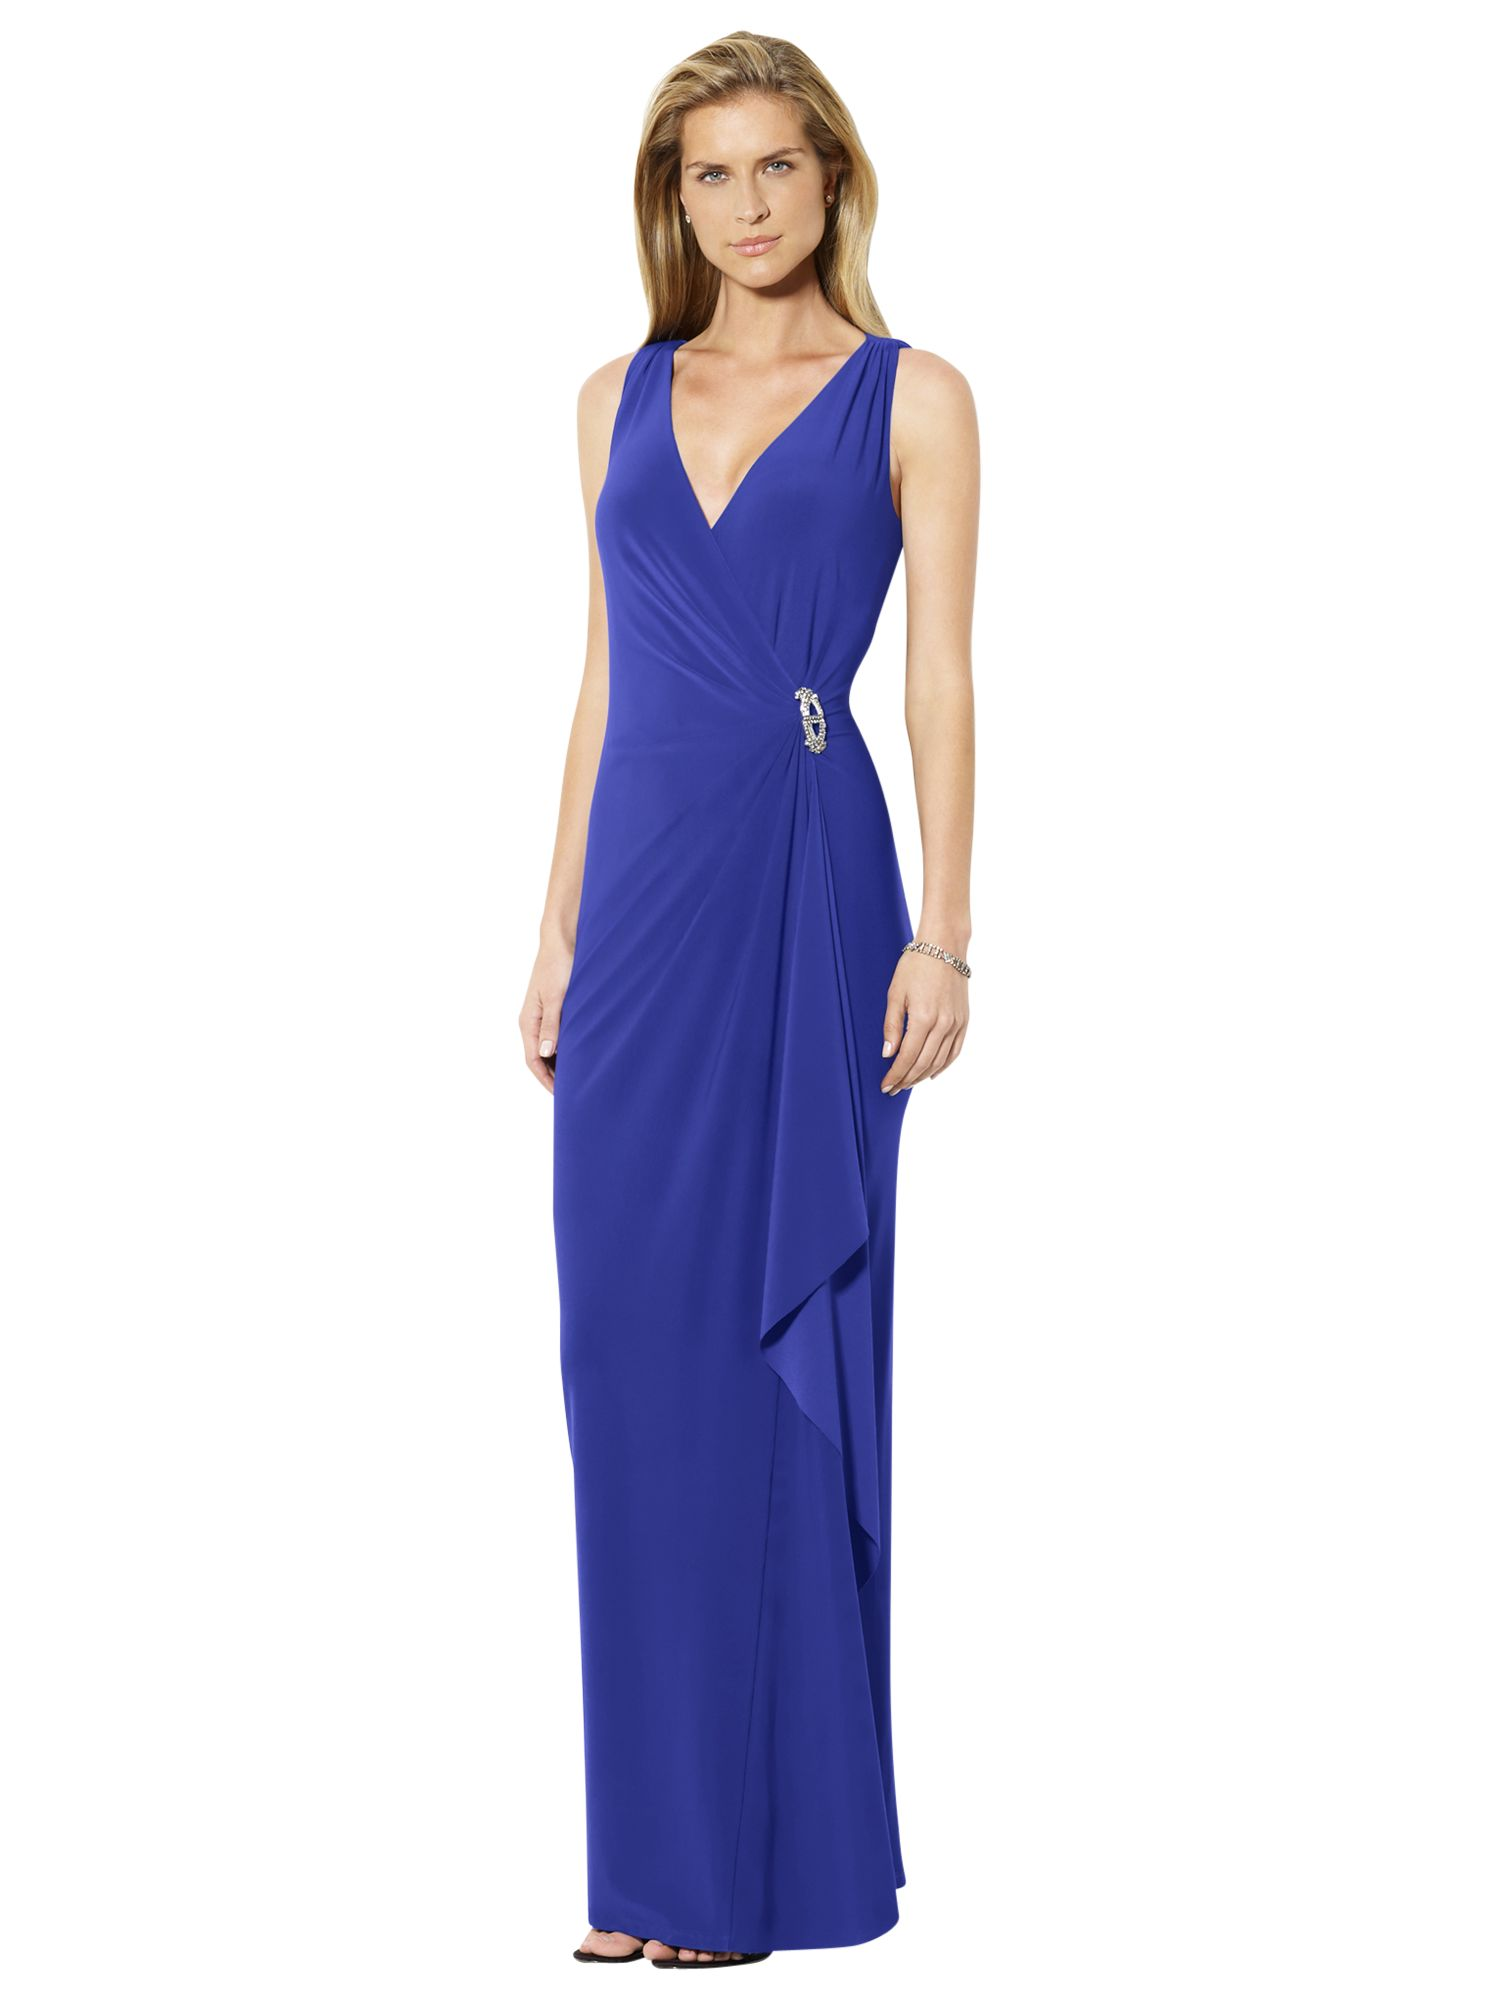 lauren ralph lauren sleeveless brooch dress cannes blue, lauren, ralph, sleeveless, brooch, dress, cannes, blue, lauren ralph lauren, 14|10|8|12|6|16, women, womens dresses, men, ralph lauren, lauren ralph lauren for women, shop by brand, 1903821